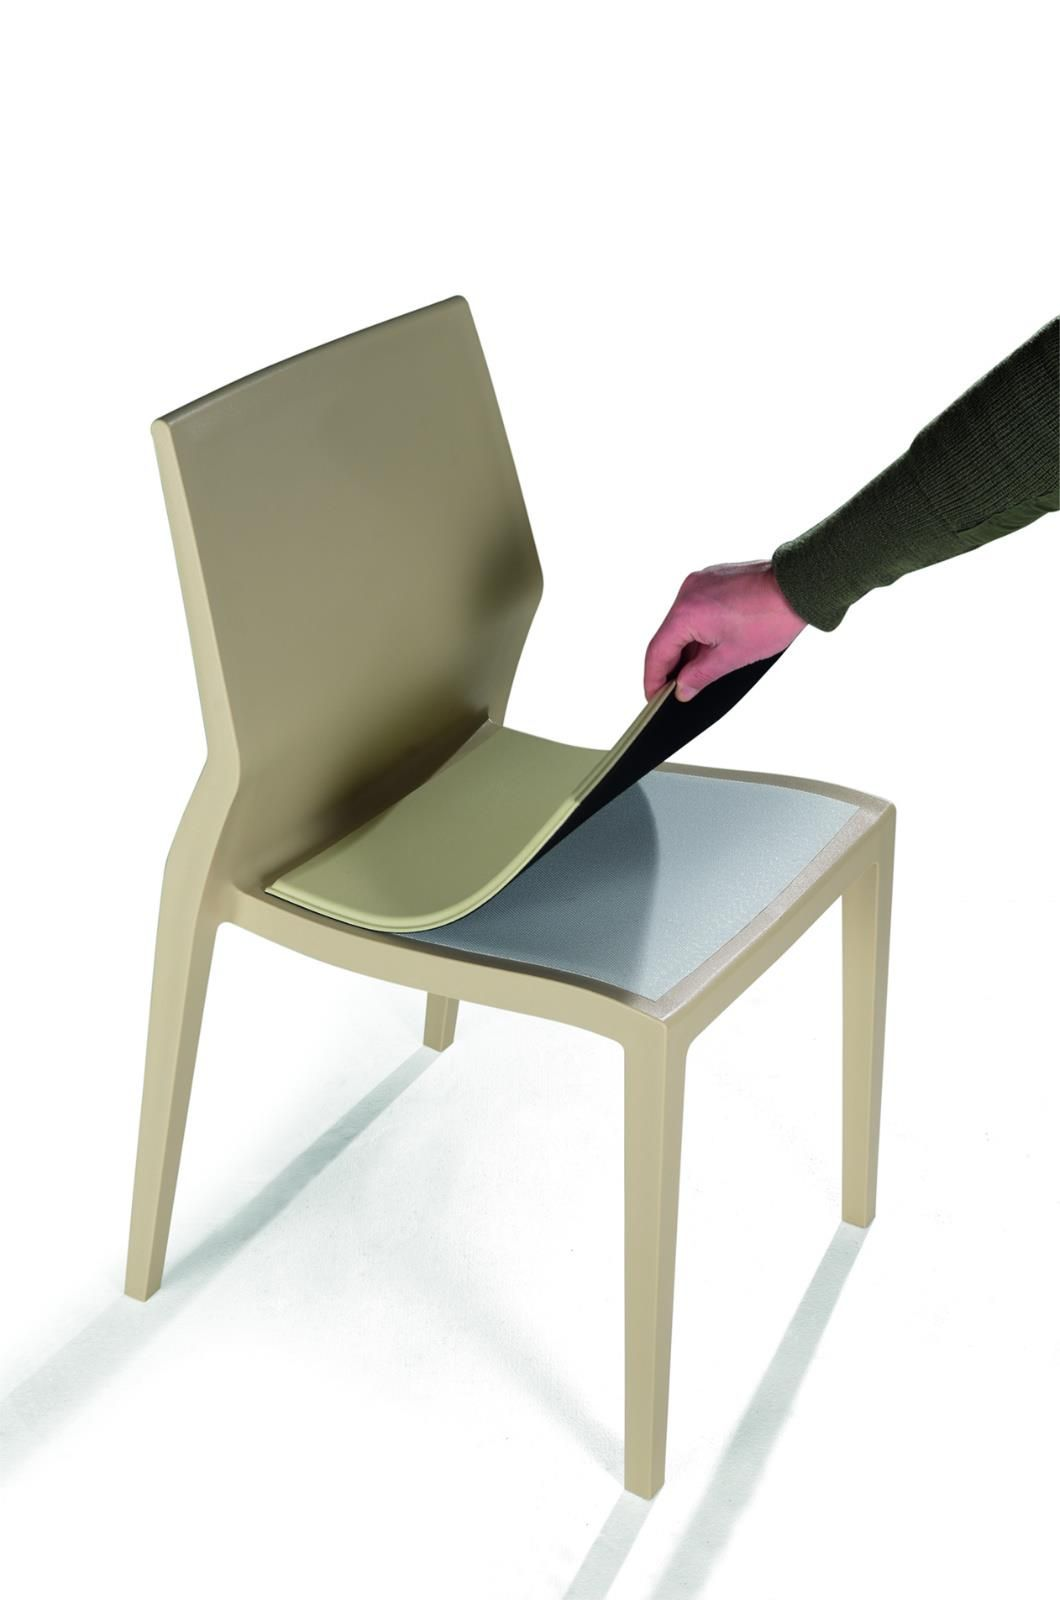 Hoth By IBEBI Design Is A Ergonomic And Indestructible Chair. Itu0027s Not An  Exaggeration, Itu0027s Really Durable.